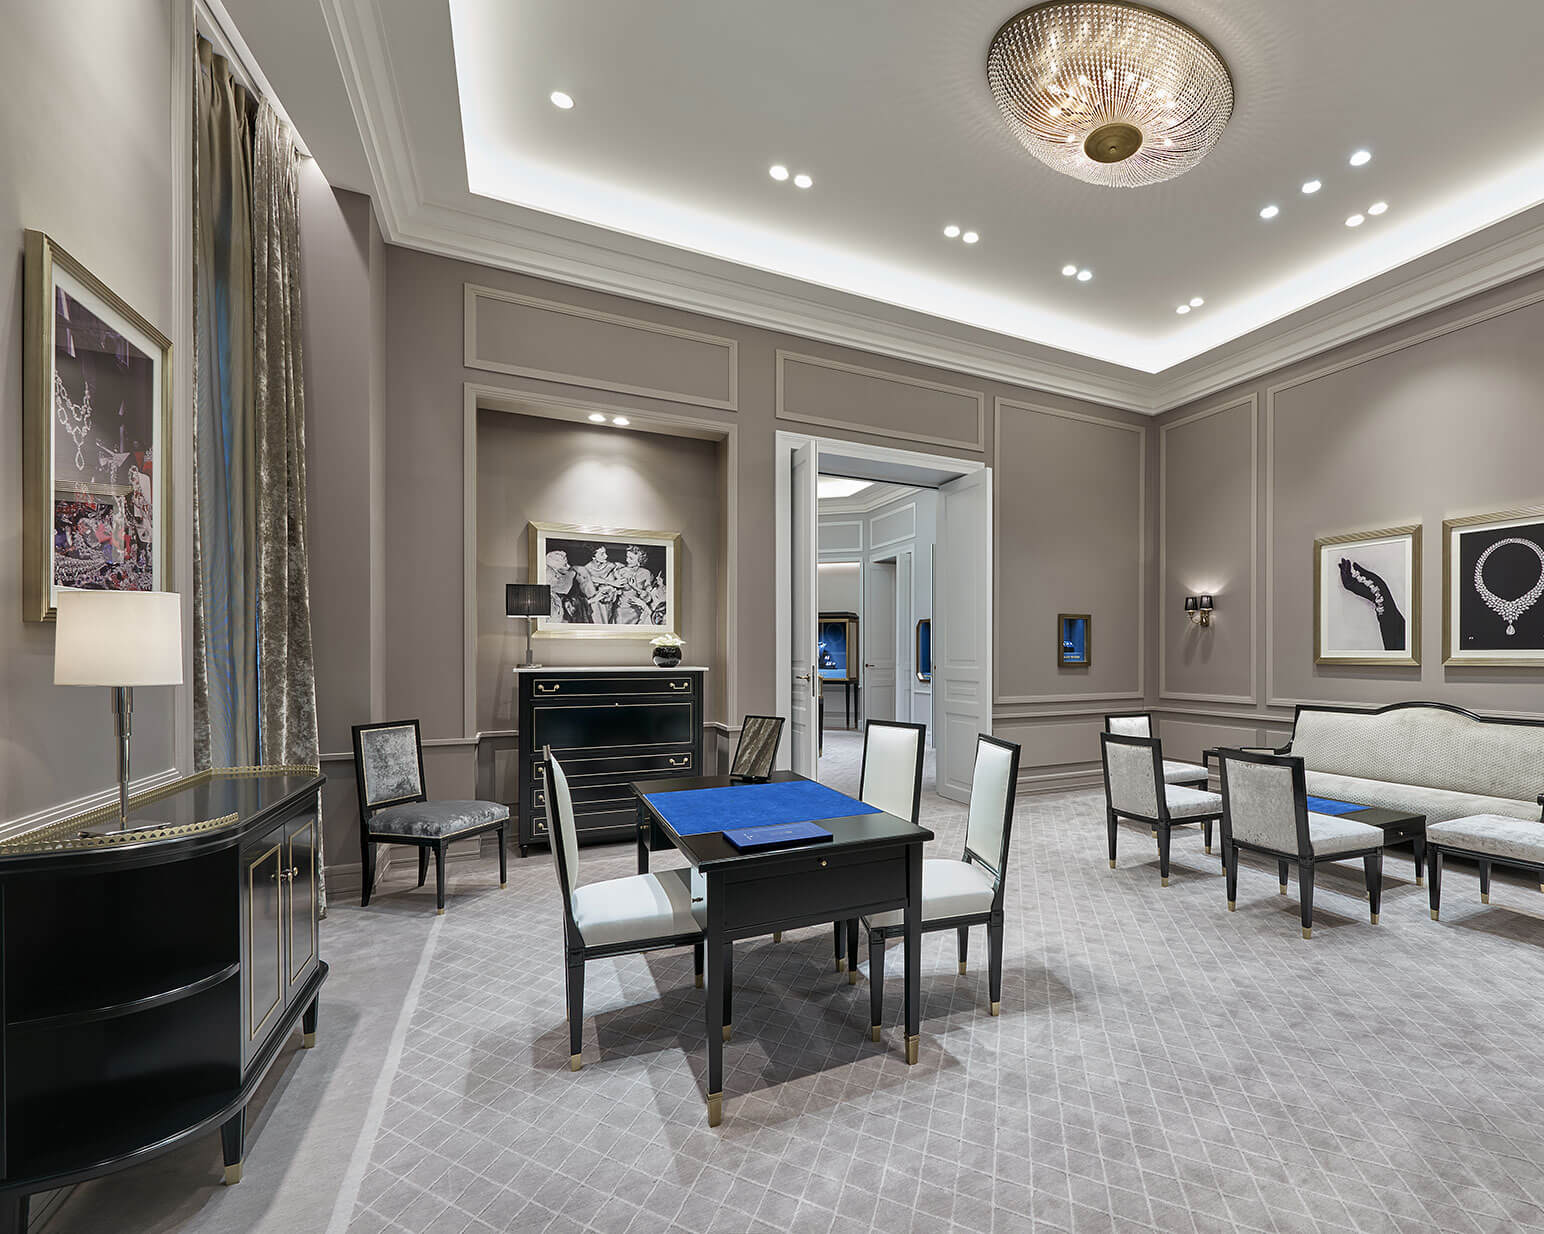 Salon Horlogerie Paris Harry Winston Celebrates The Reopening Of Its Historic Salon In